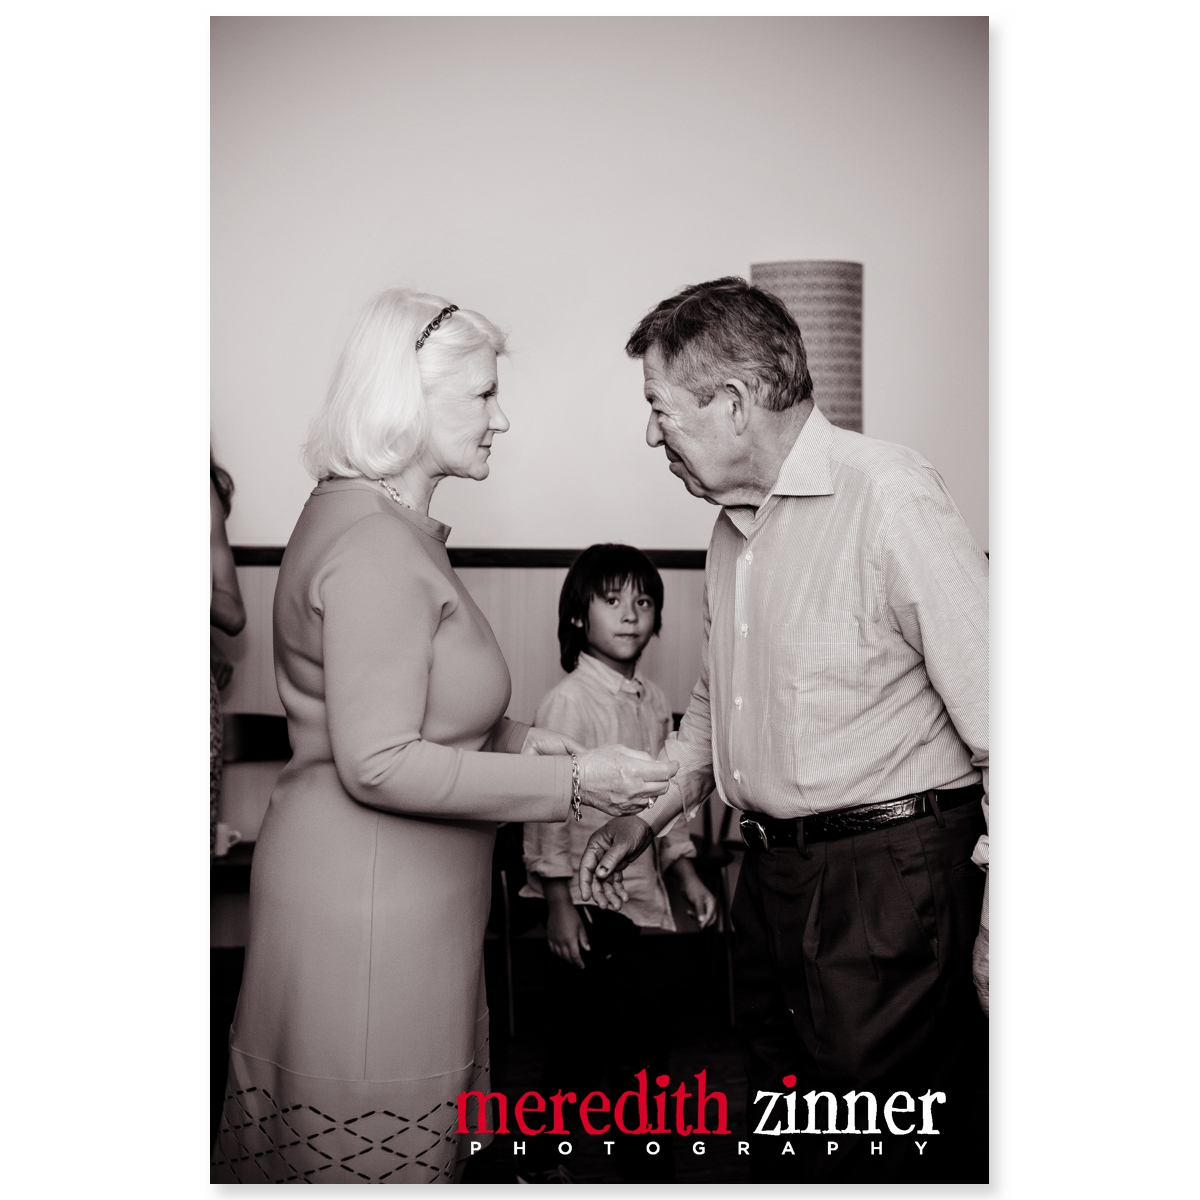 Meredith_Zinner_Photography_StilesCelebration_0356